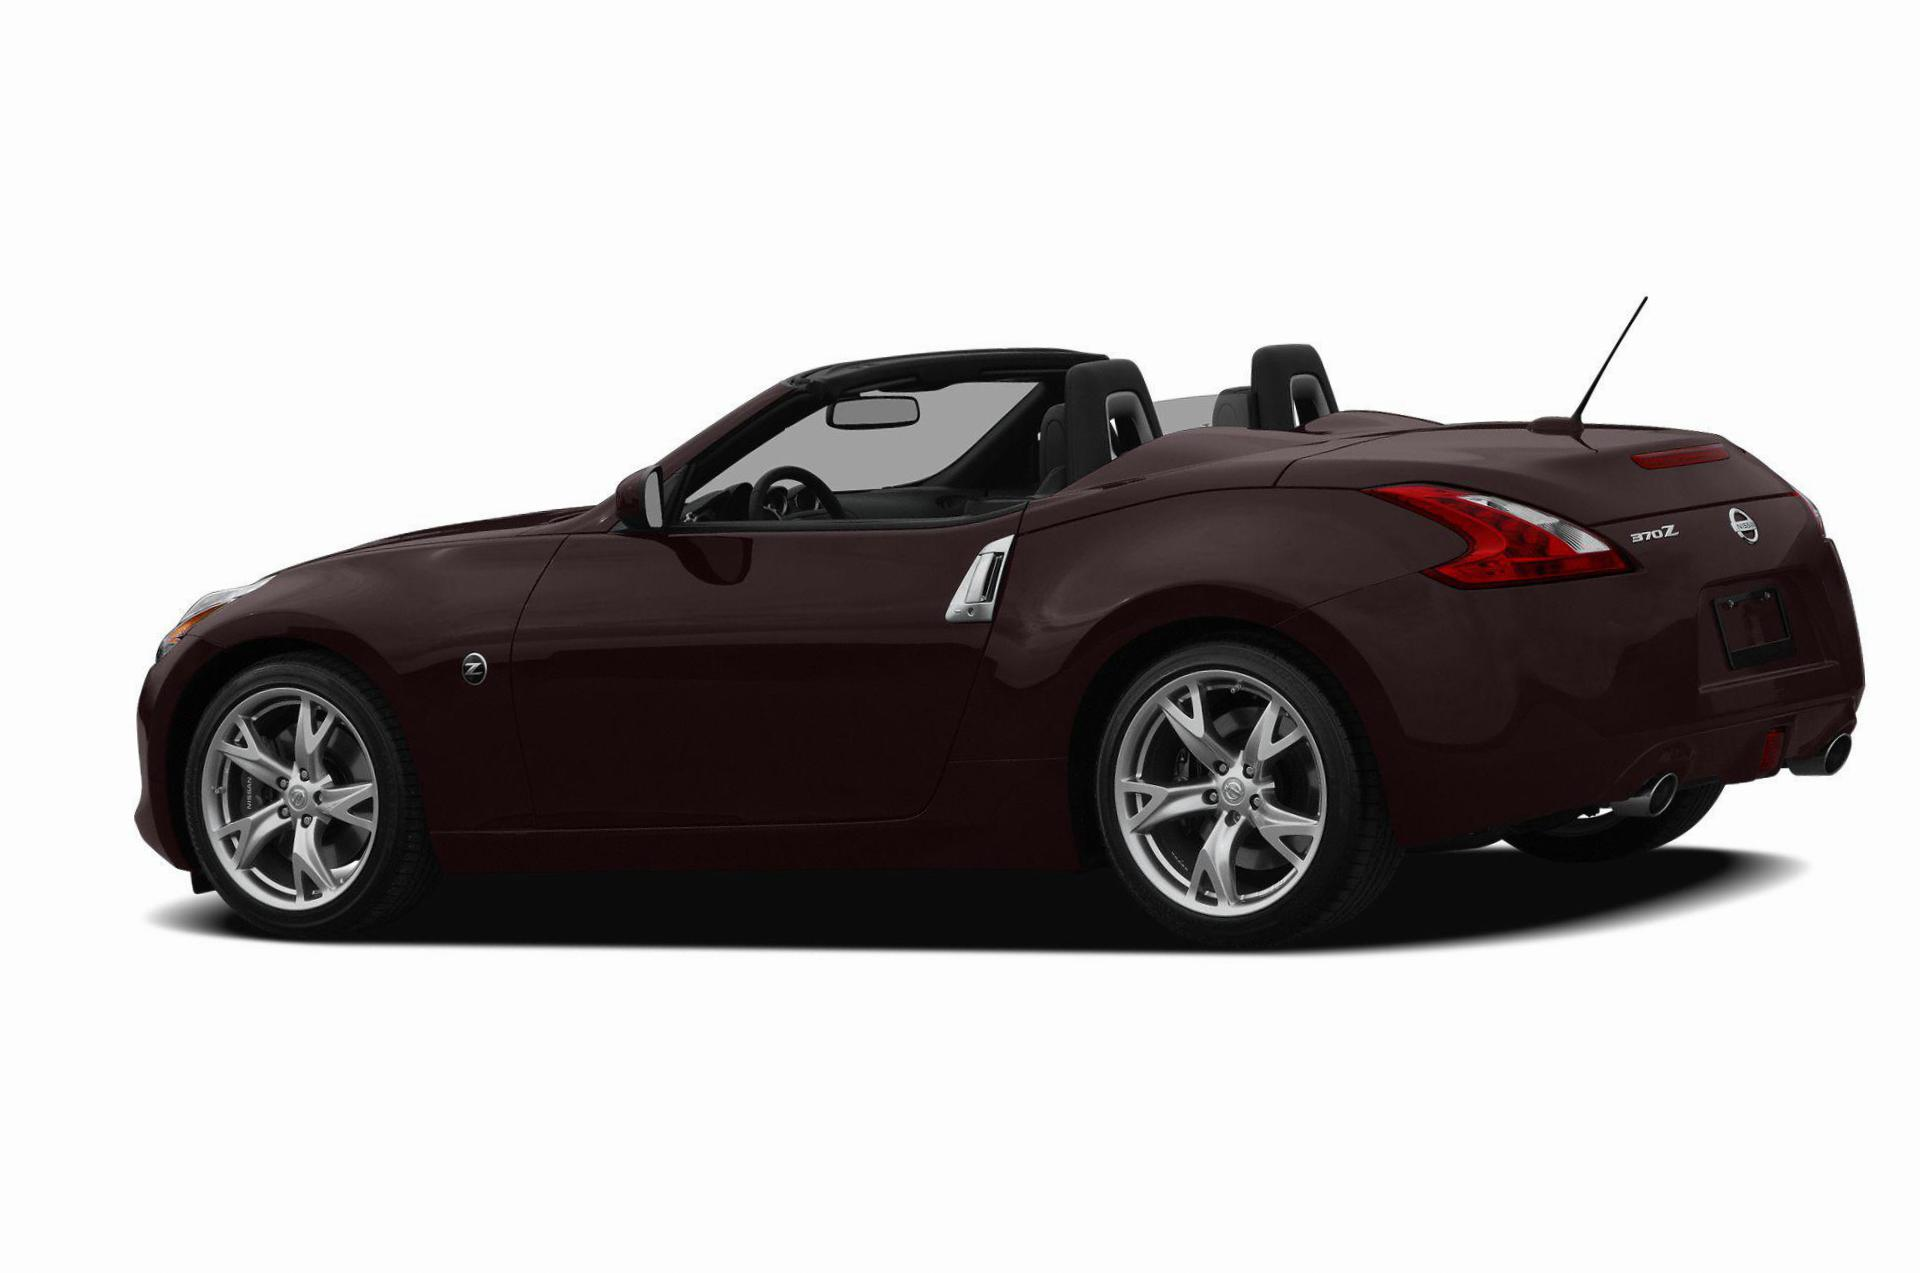 370Z Roadster Nissan models 2007